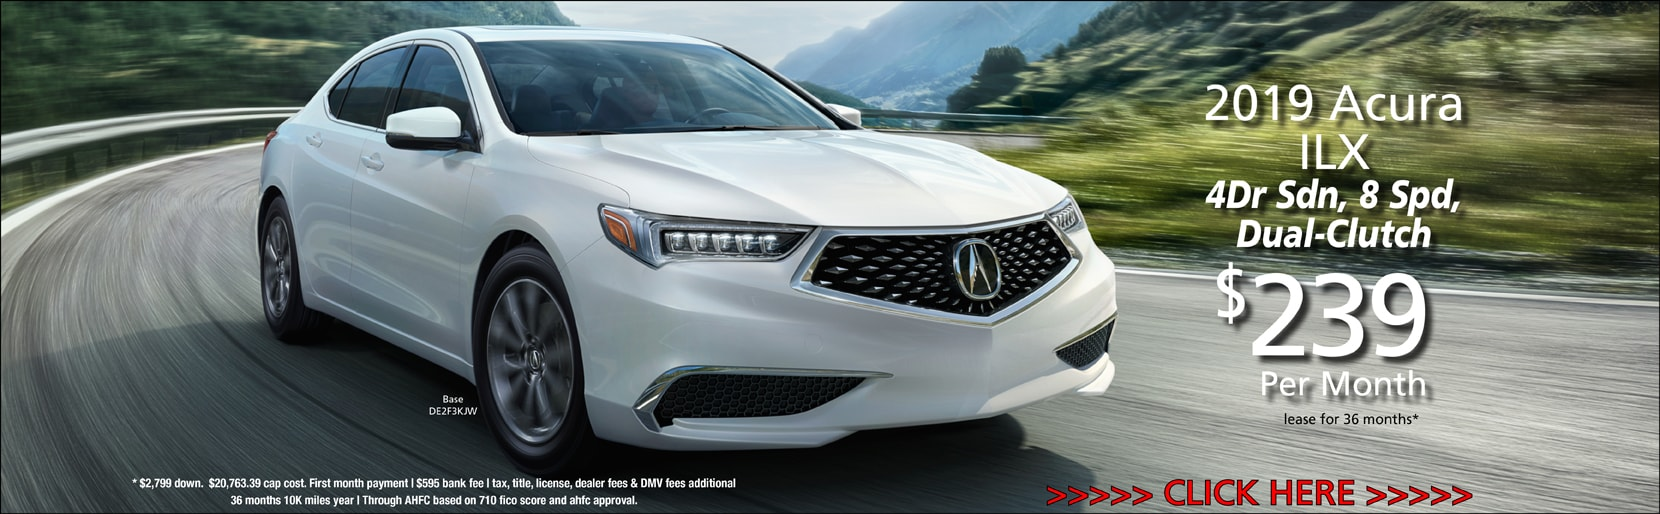 Acura Dealers Long Island >> Acura Of Valley Stream New Used Acura Dealer New York